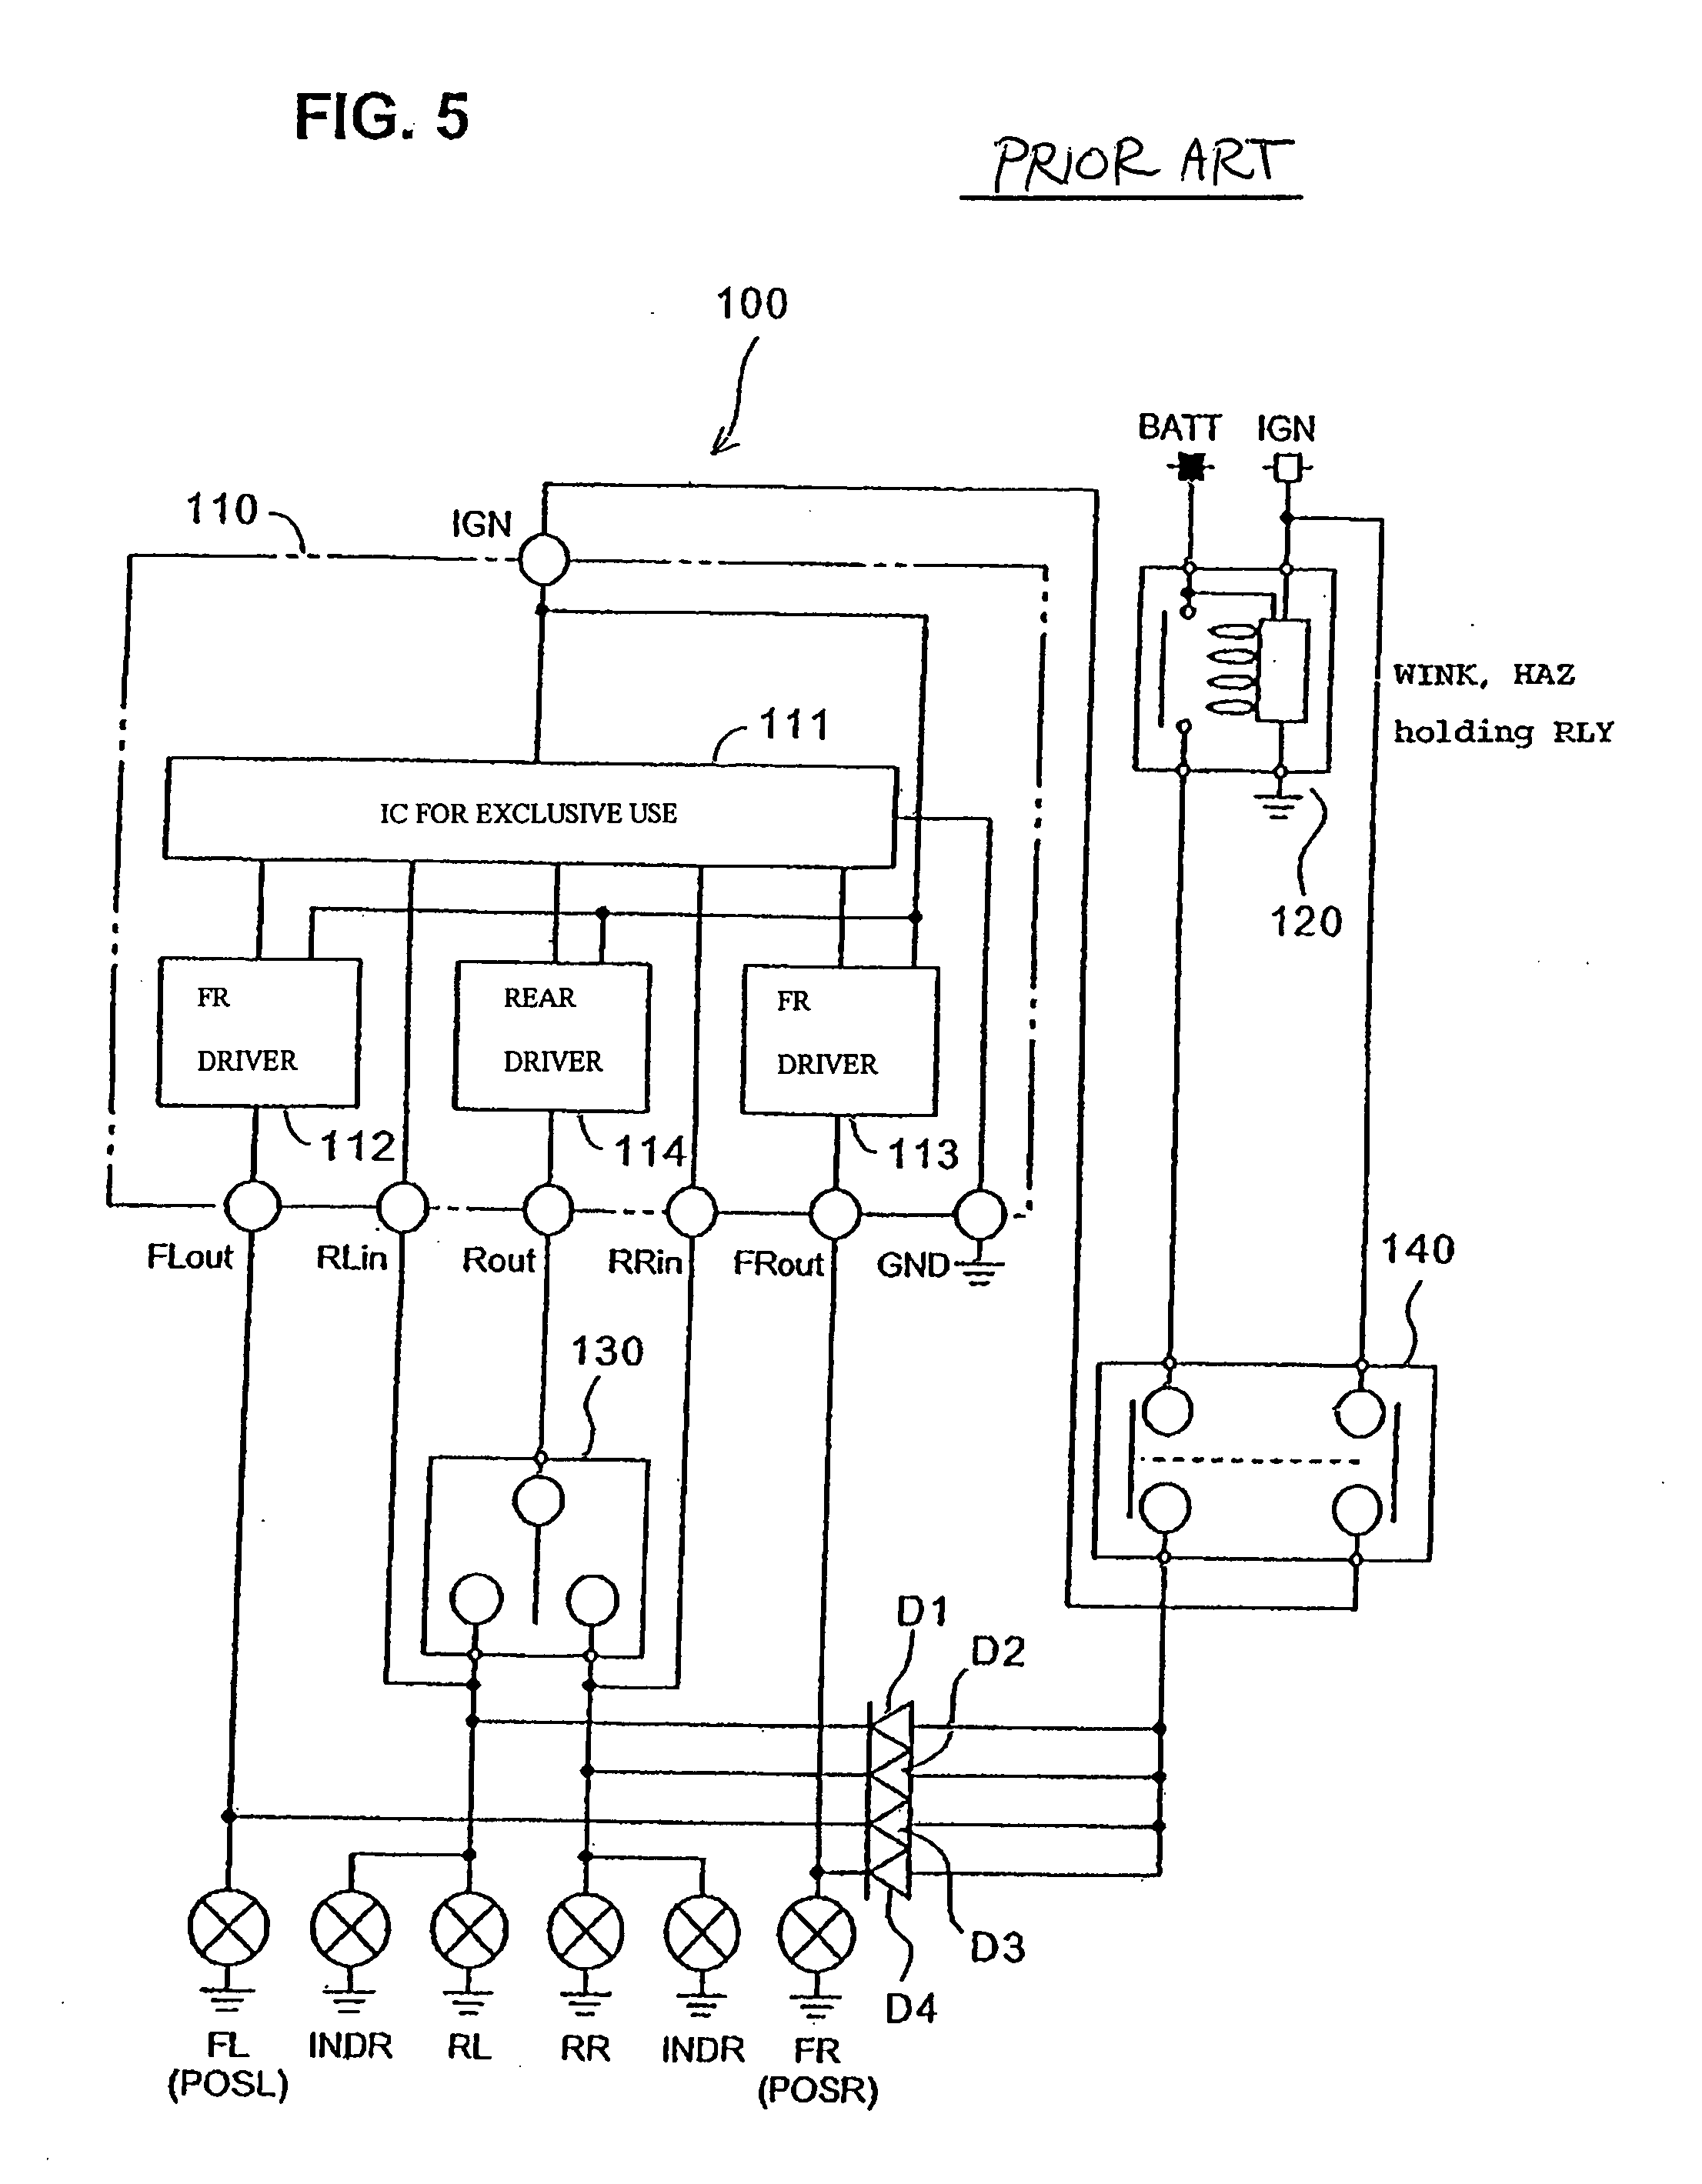 indak ignition switch wiring diagram   36 wiring diagram images